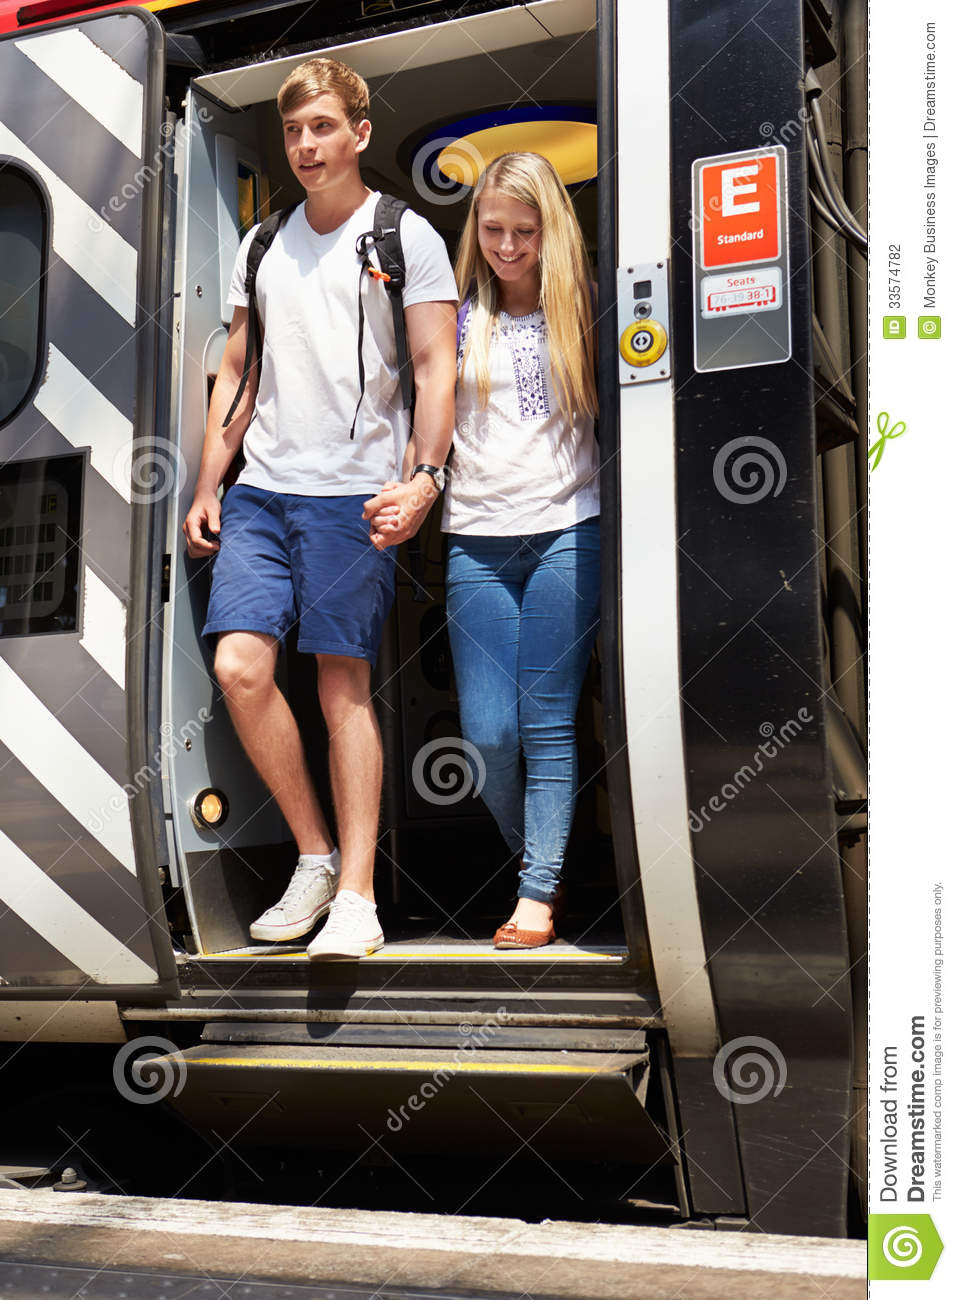 Get To Know Teen Model And Singer Delilah Belle Hamlin: Young Couple Getting Off Train At Platform Stock Photo